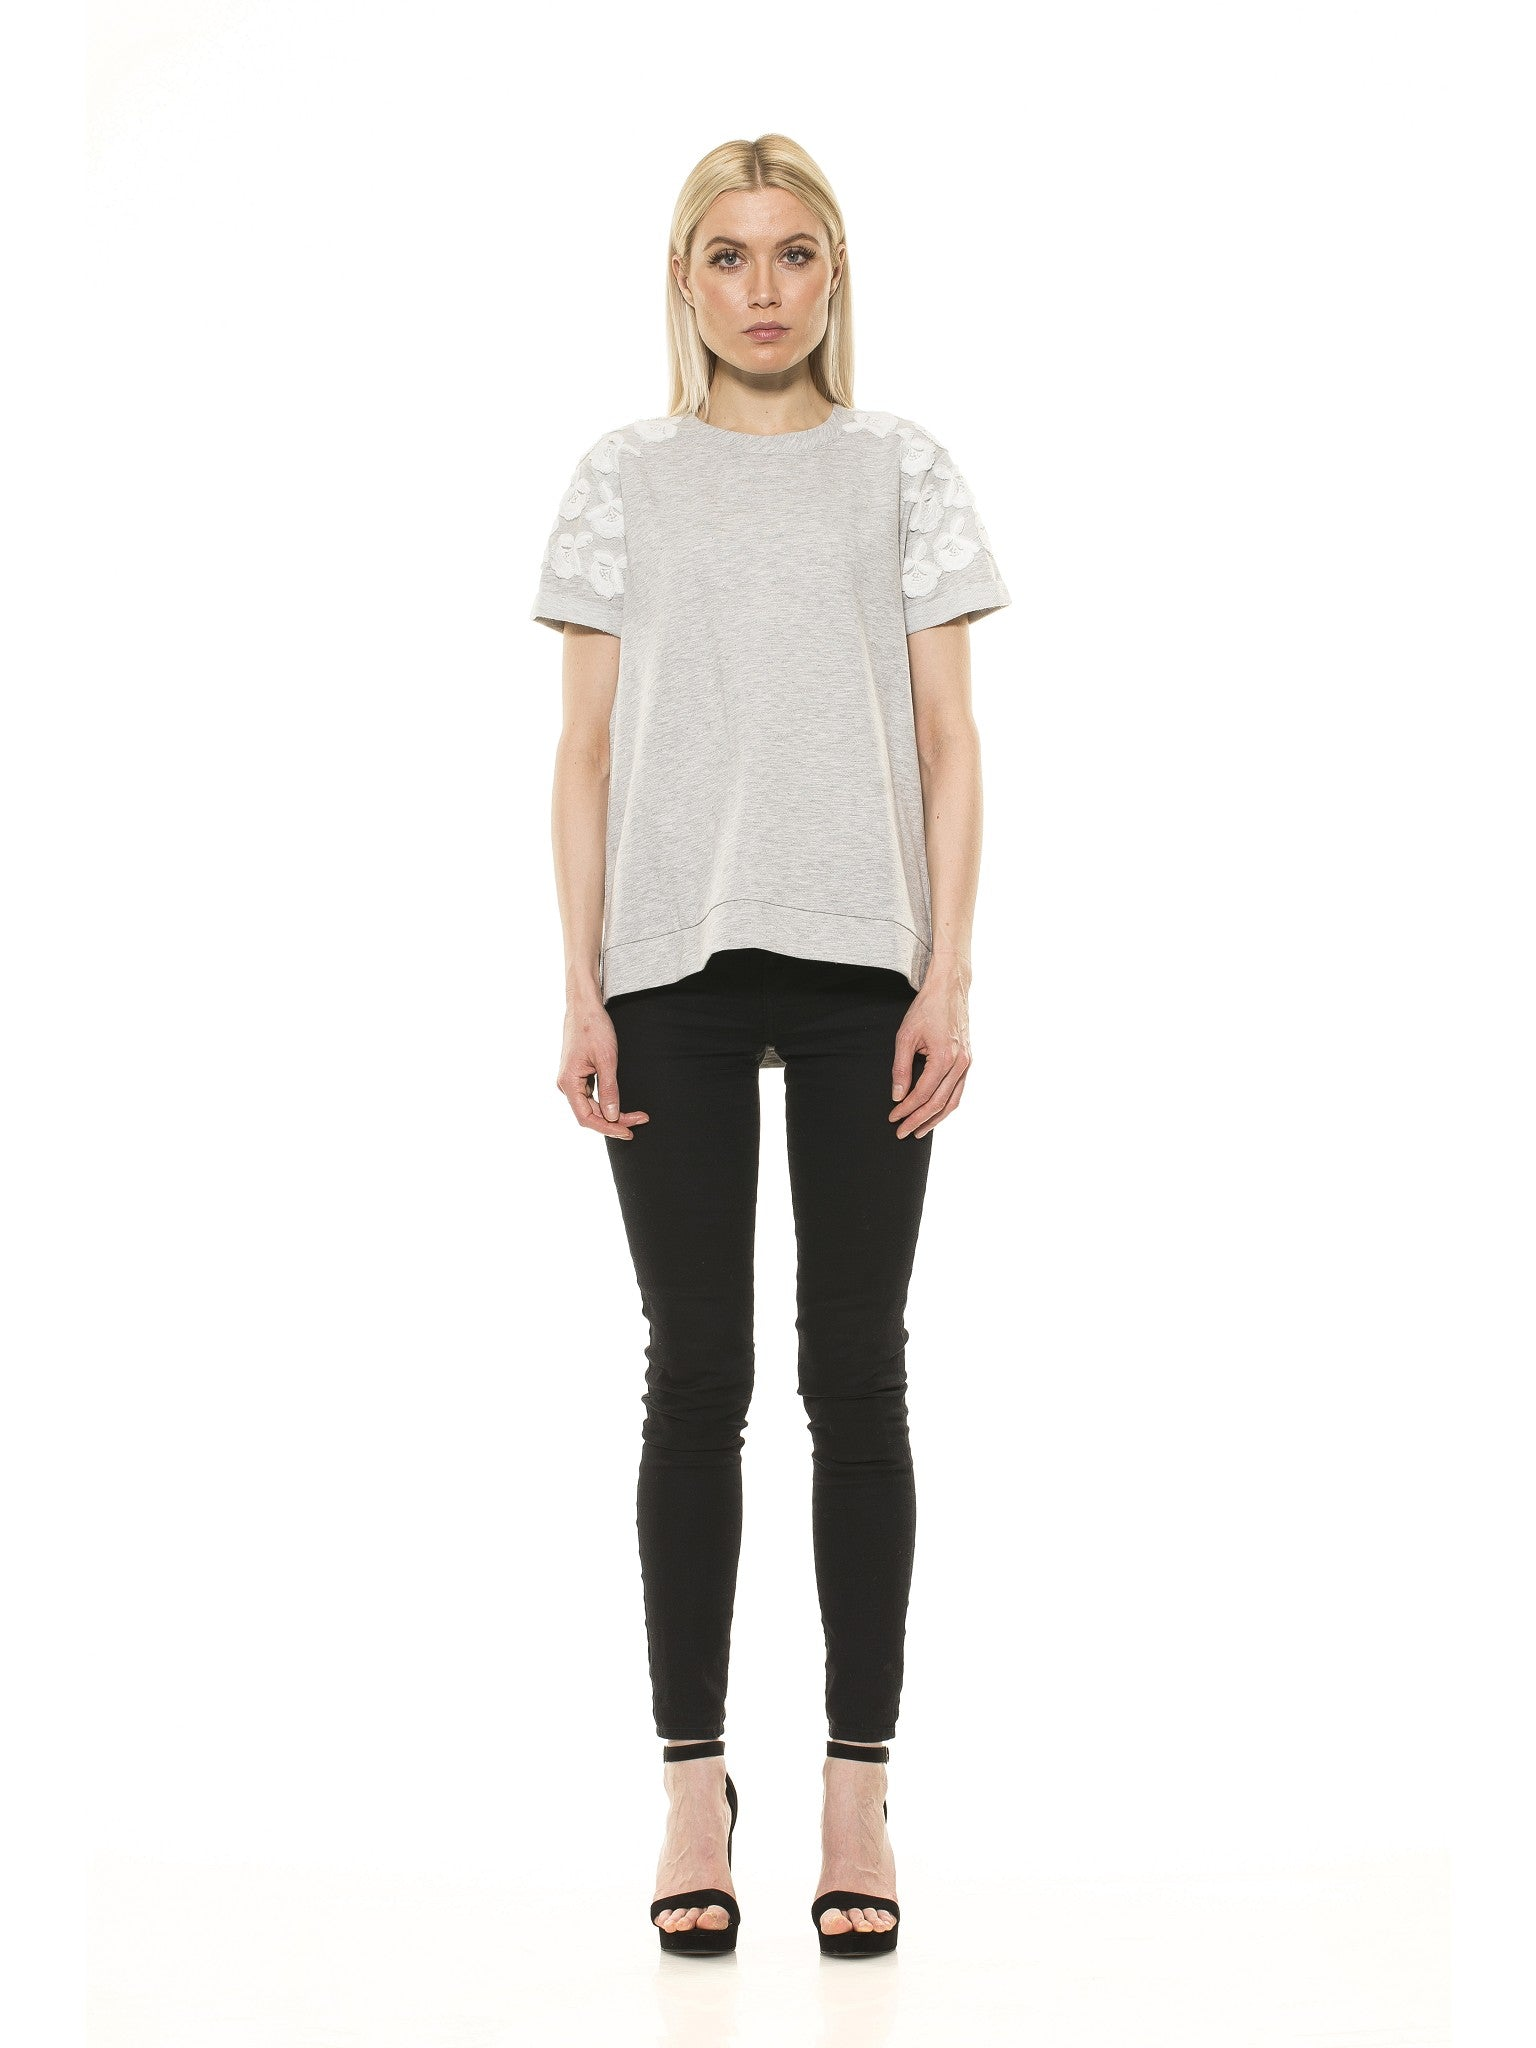 Floral Embroidered French Terry Tee